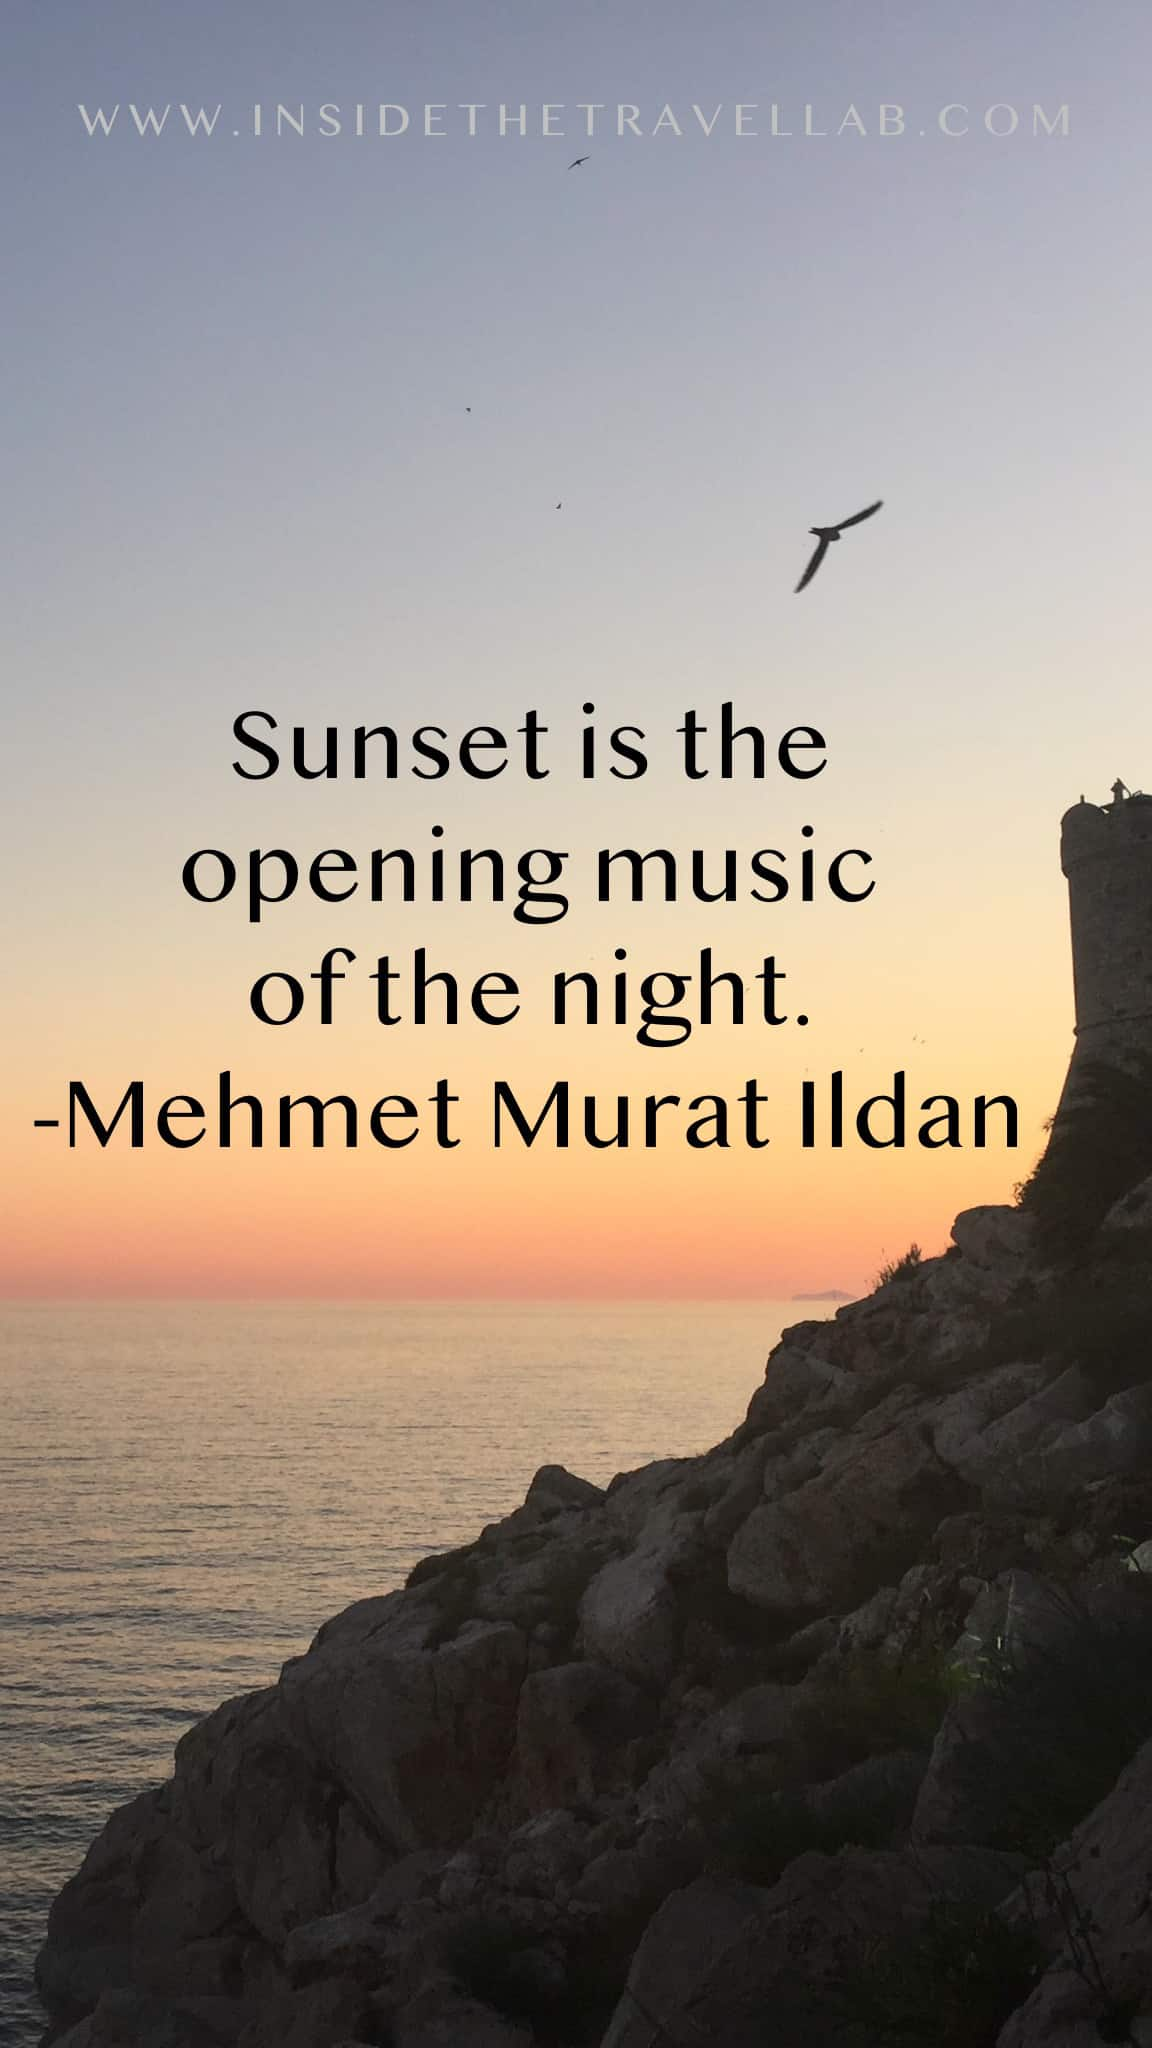 Sunset captions and sunset quotes - sunset is the opening music of the night - Mehmet Murat Ildan